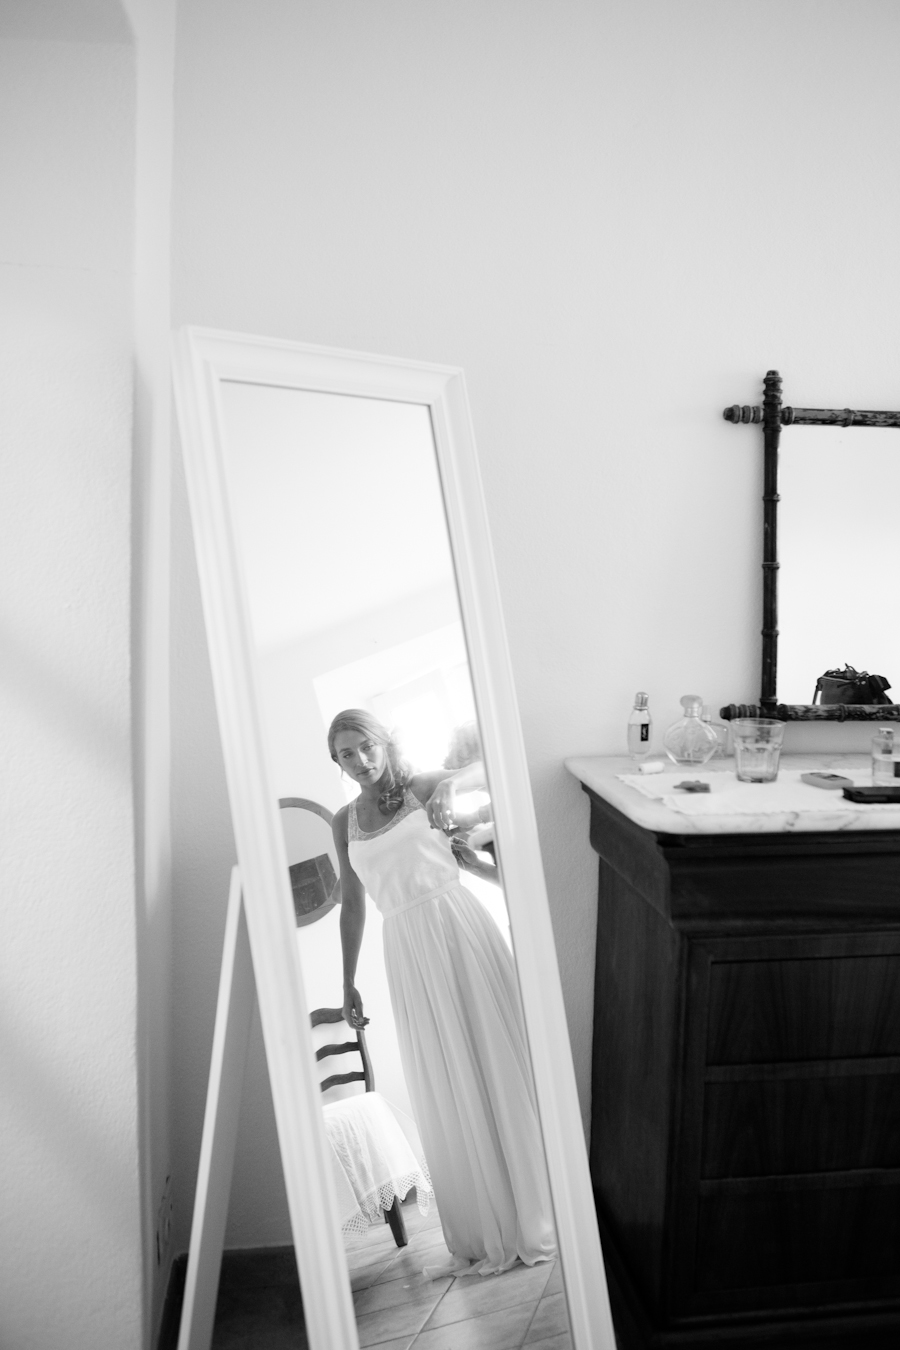 keith-flament-photographe-reportage-mariage-corse-27